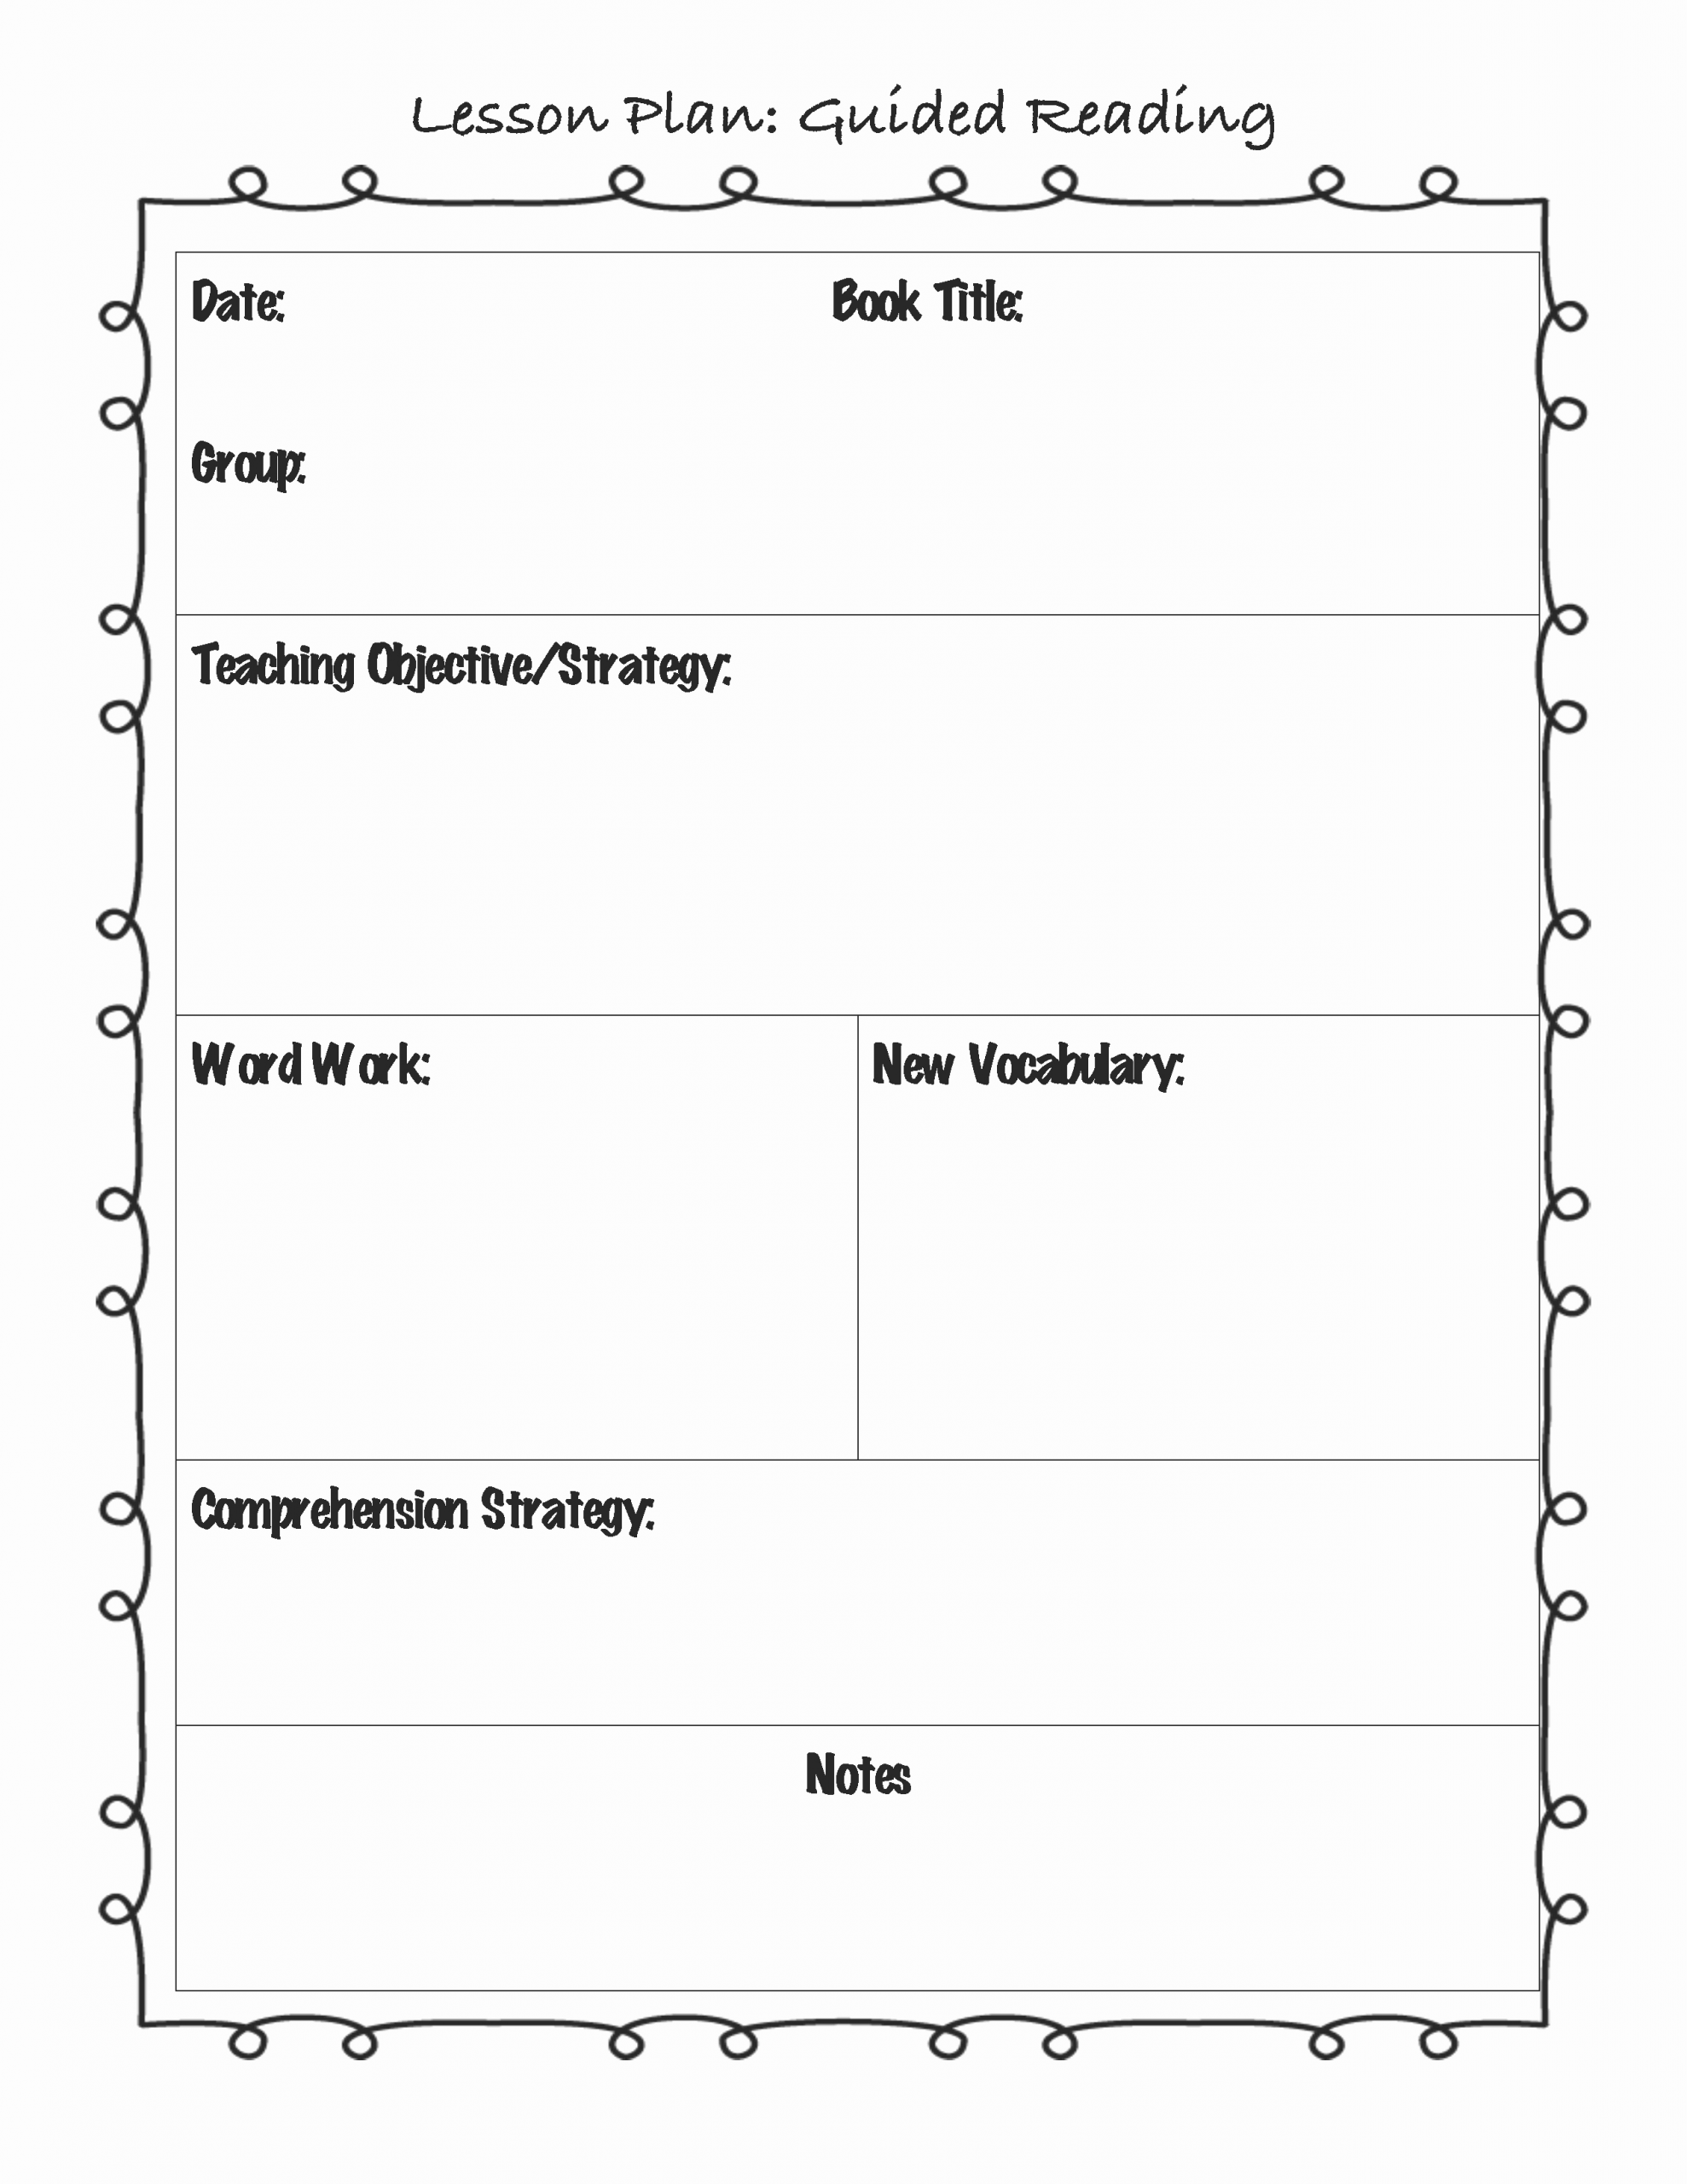 Elementary Weekly Lesson Plan Template New Guided Reading Lesson Plan Template